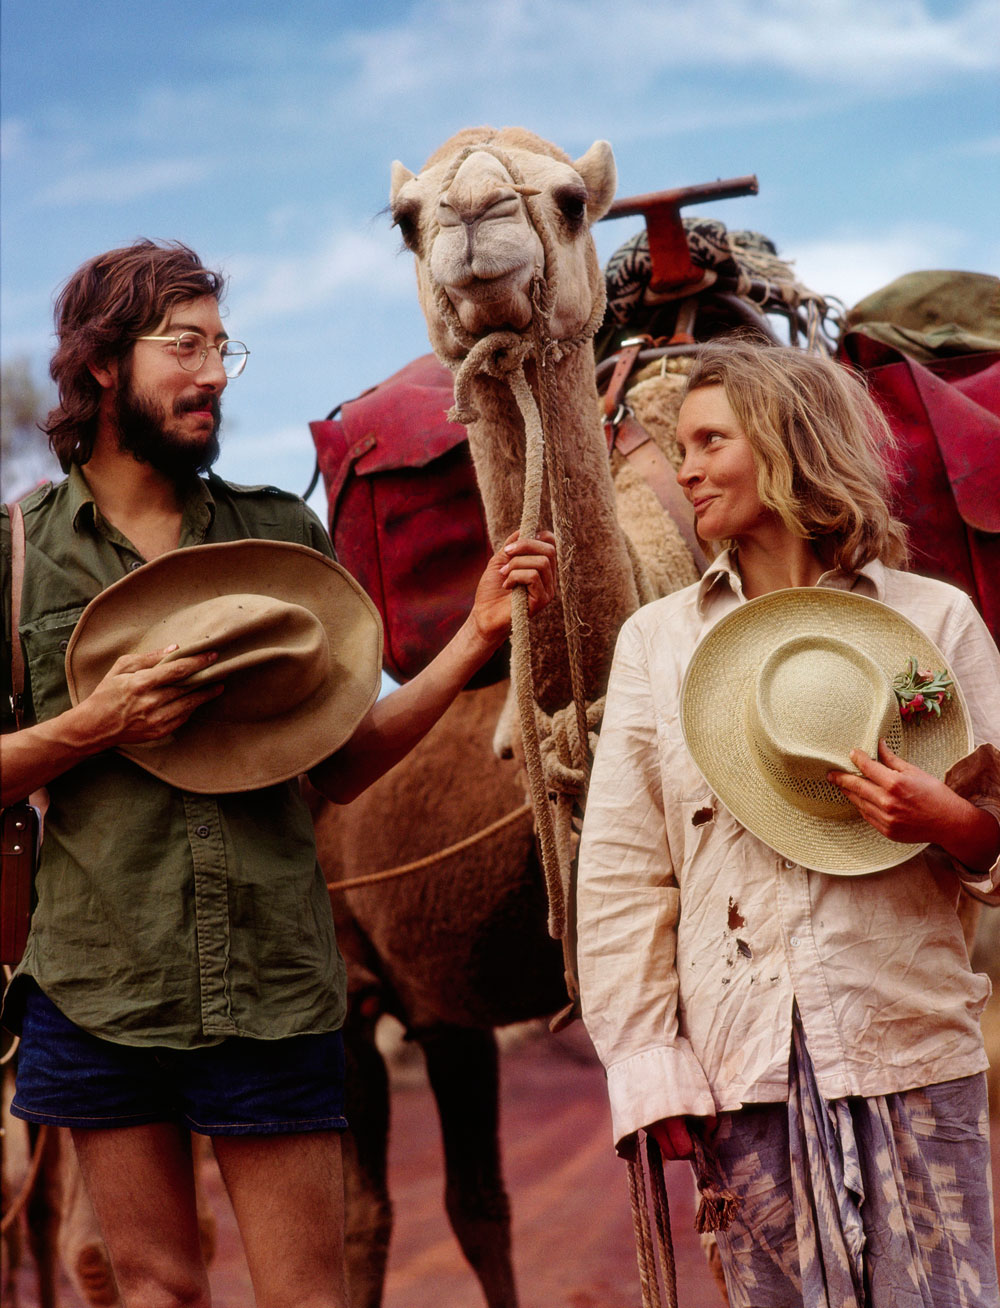 Photojournalist Rick Smolan along with Robyn Davidson in the Outback